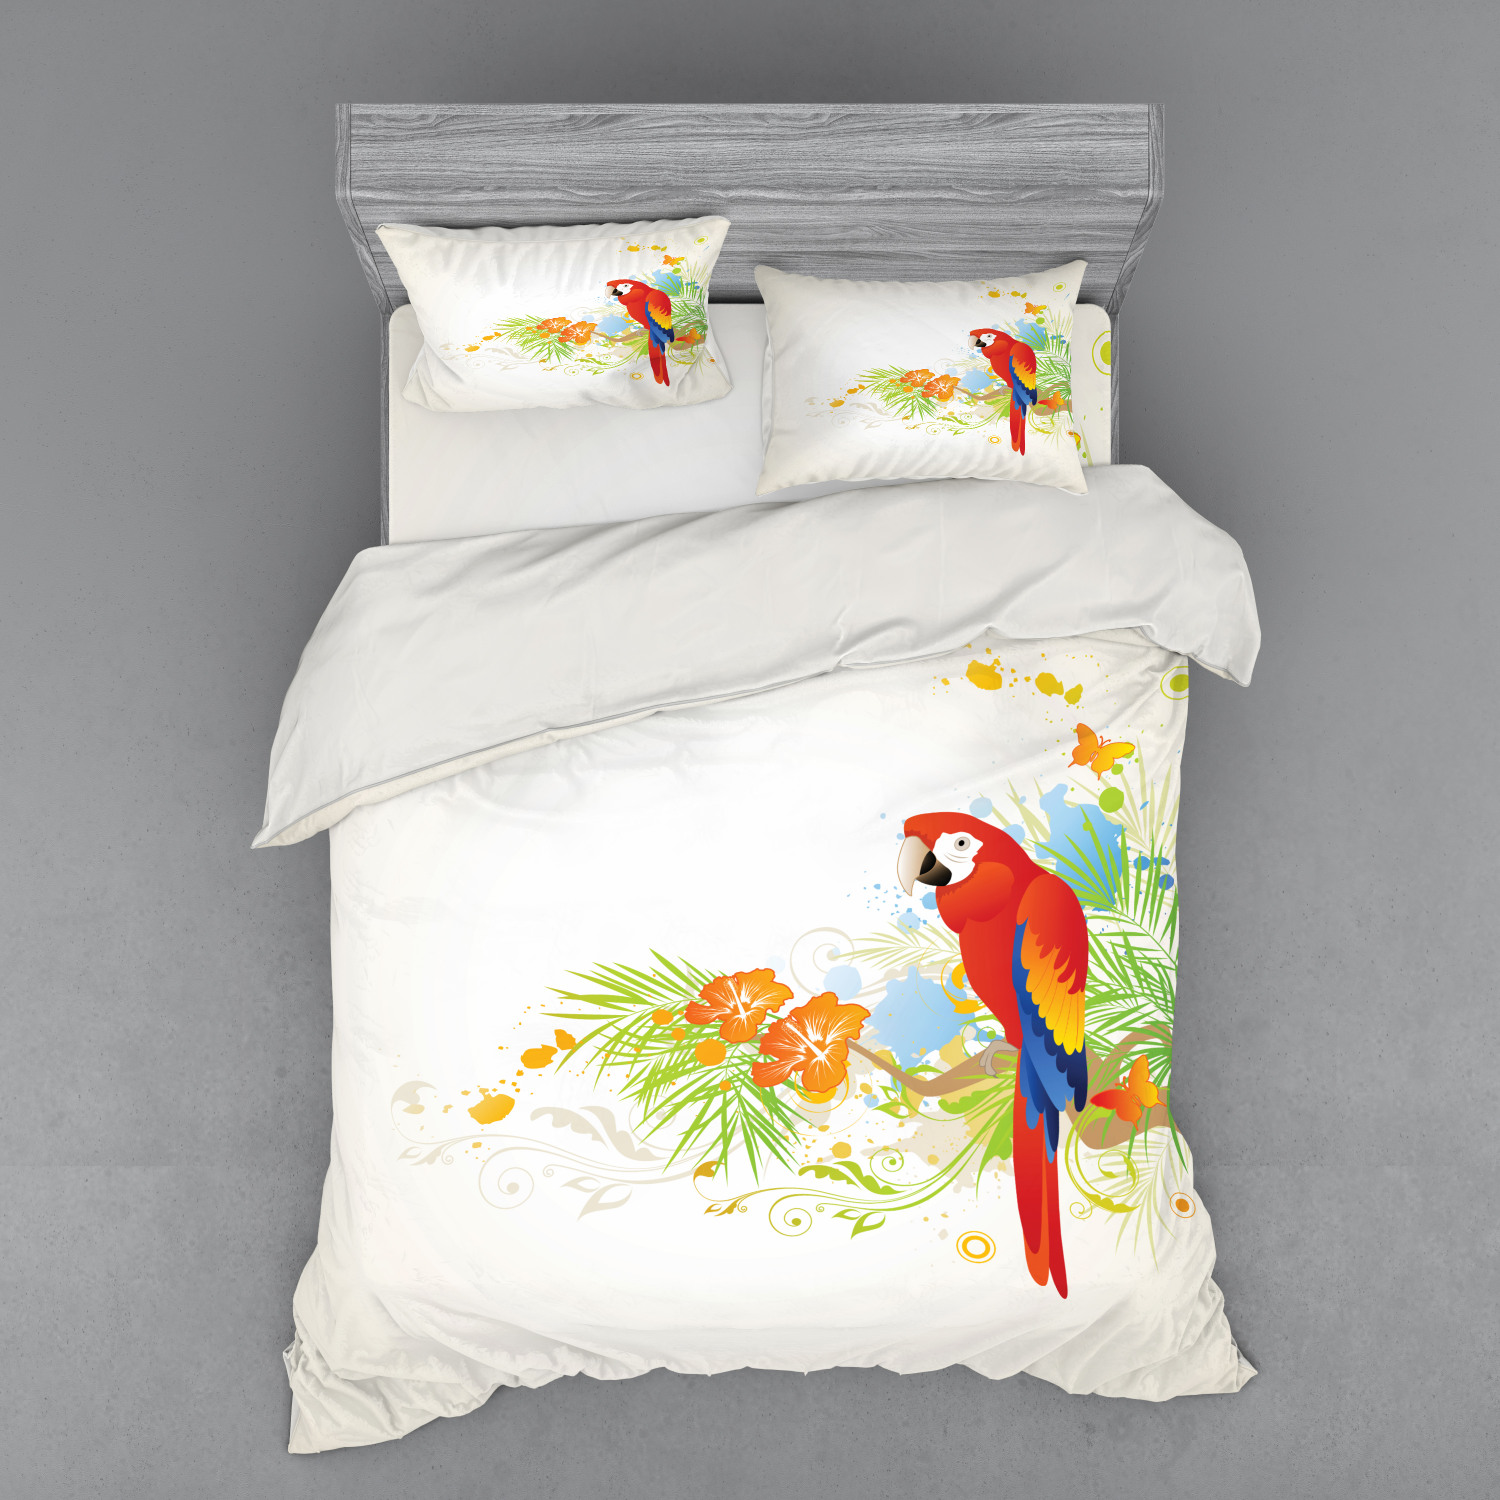 thumbnail 134 - Ambesonne Summer Bedding Set Duvet Cover Sham Fitted Sheet in 3 Sizes